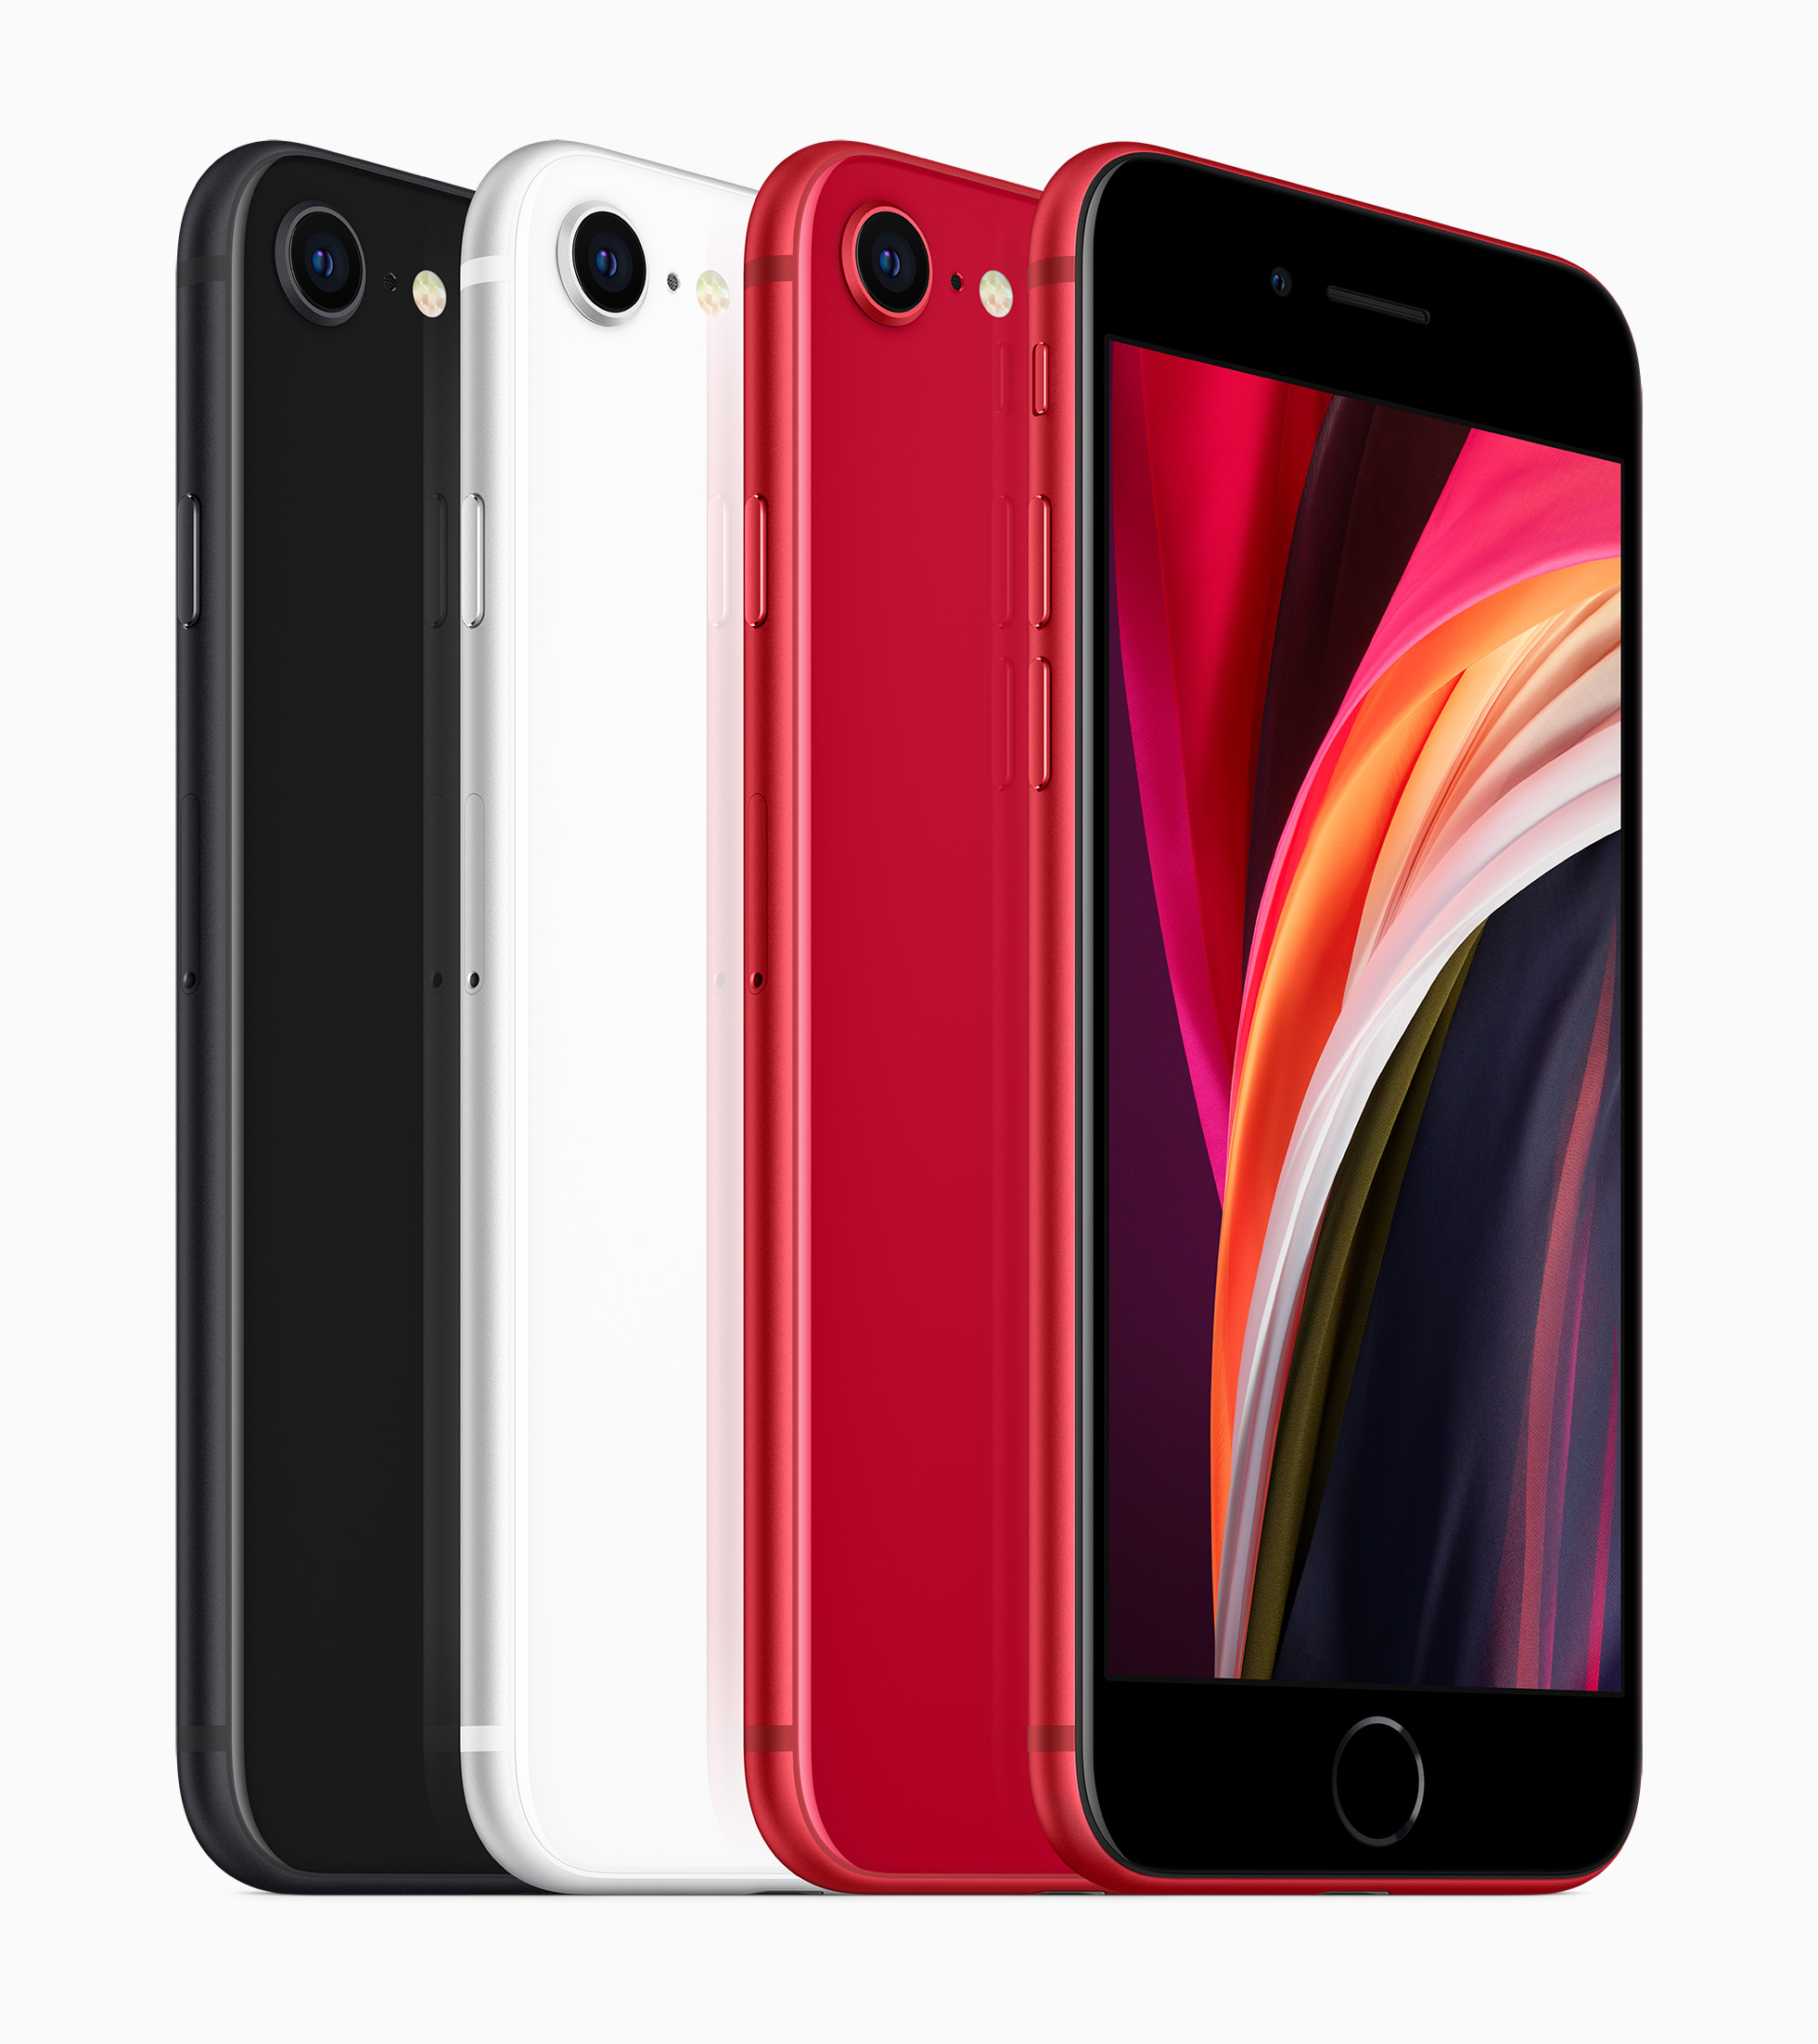 """https://www.youredm.com/ """"srcset ="""" https://www.youredm.com/wp-content/uploads/2020/04/Apple_new-iphone-se-black-white-product-red-colors_04152020. jpg 1960w, https://www.youredm.com/wp-content/uploads/2020/04/Apple_new-iphone-se-black-white-product-red-colors_04152020-768x864.jpg 768w, https: // www. youredm.com/wp-content/uploads/2020/04/Apple_new-iphone-se-black-white-product-red-colors_04152020-911x1024.jpg 911w """"dimensioni ="""" (larghezza massima: 1960px) 100vw, 1960px """"/ ></div> </div> <section class="""